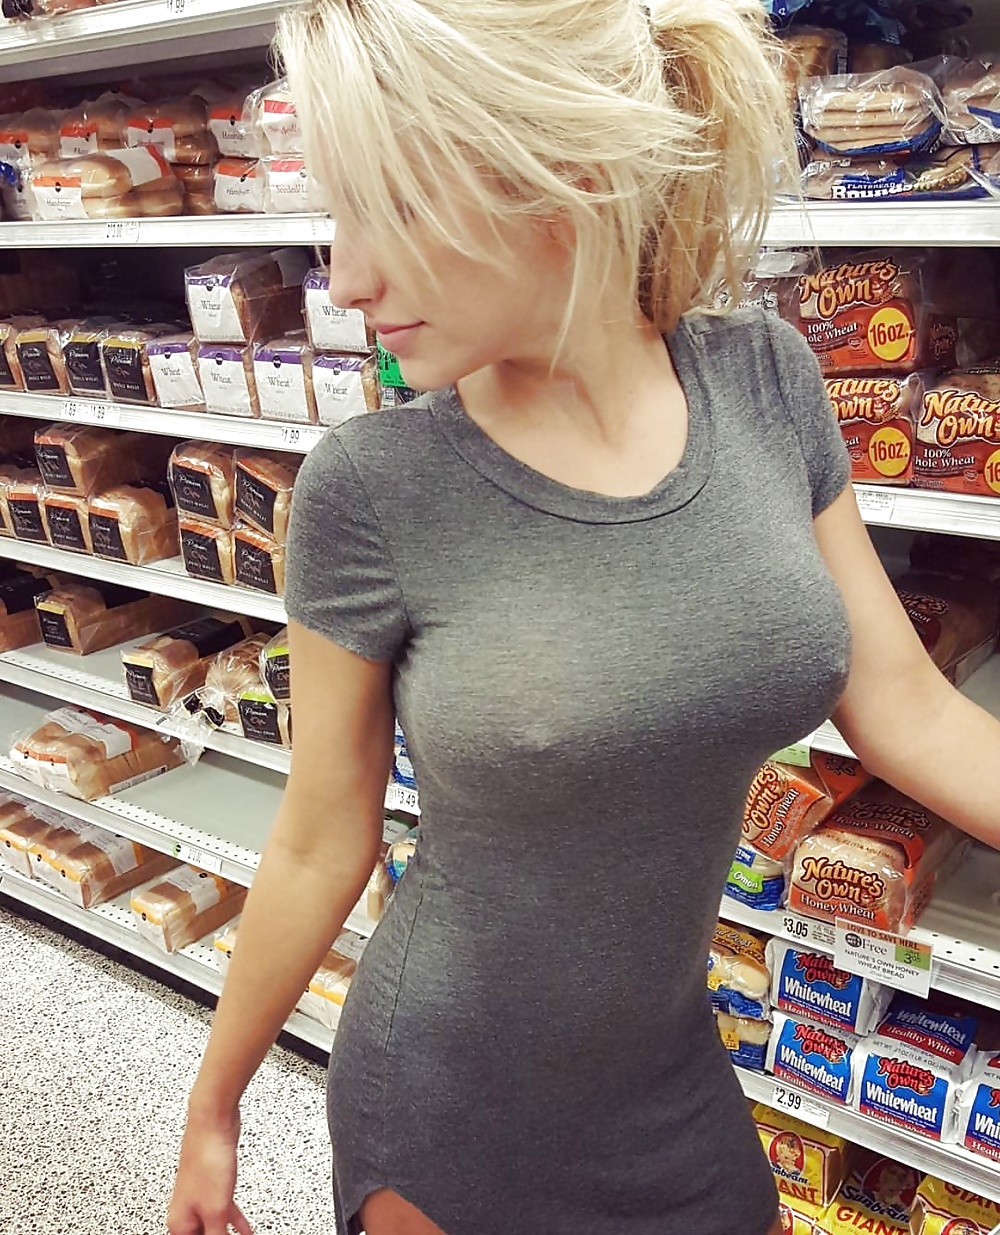 who is the hottest porn star #amateur #exposed #milfs #tits